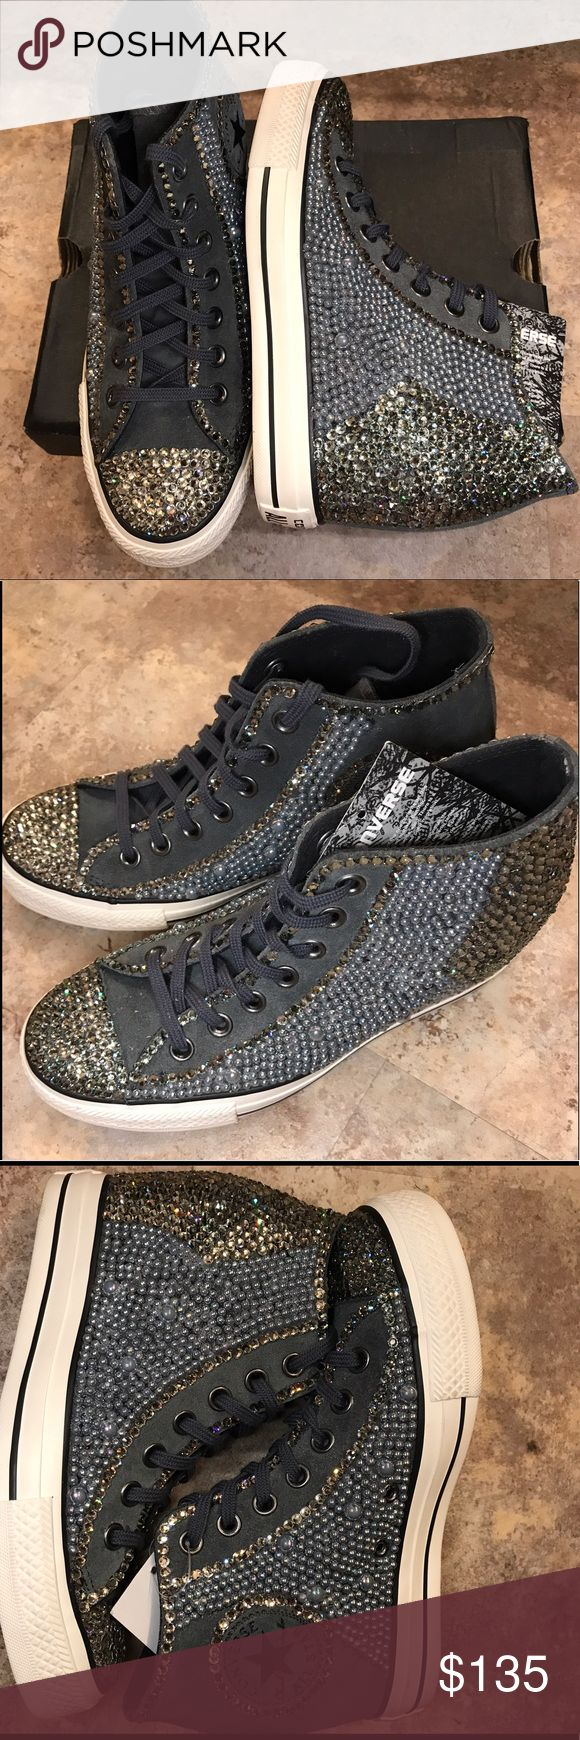 Converse Wedge Tennis Shoe Custom Bling Converse Wedge Tennis Shoe, Custom Bling, Grey suede/nubuk, Swarovski crystals, pearls, super cute on. Gorgeous👟🌸 Converse Shoes Wedges